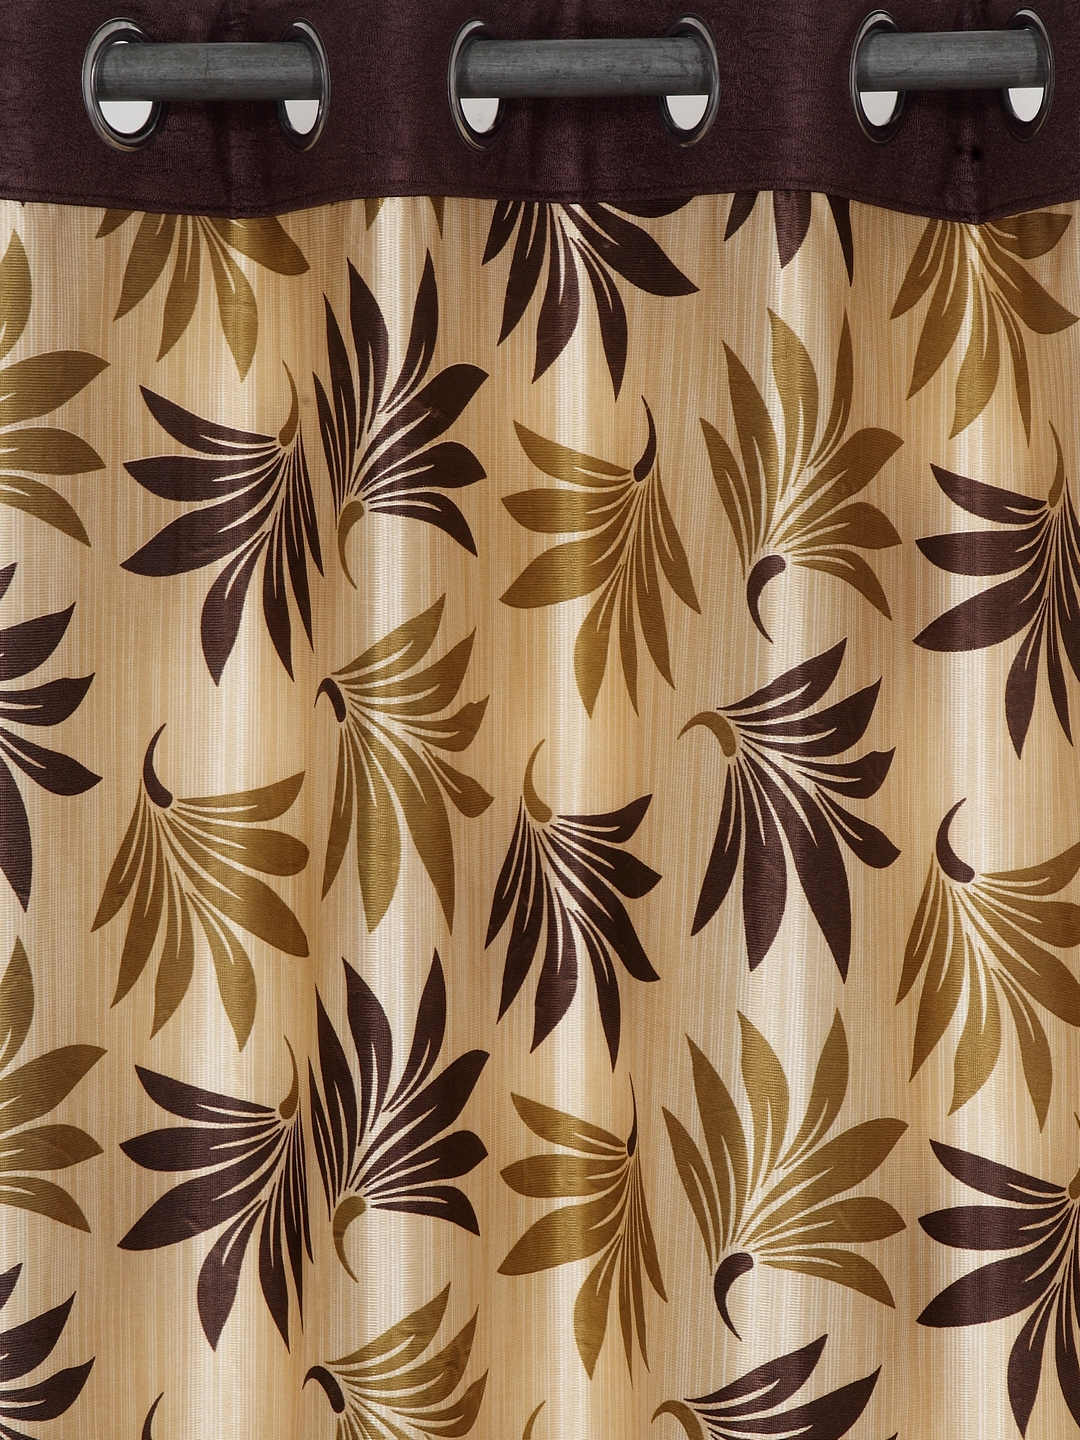 Polyester Printed Window Curtains for Bedroom, Kitchen, Kids or Living Room-022_Set of 2 - 1, Medium